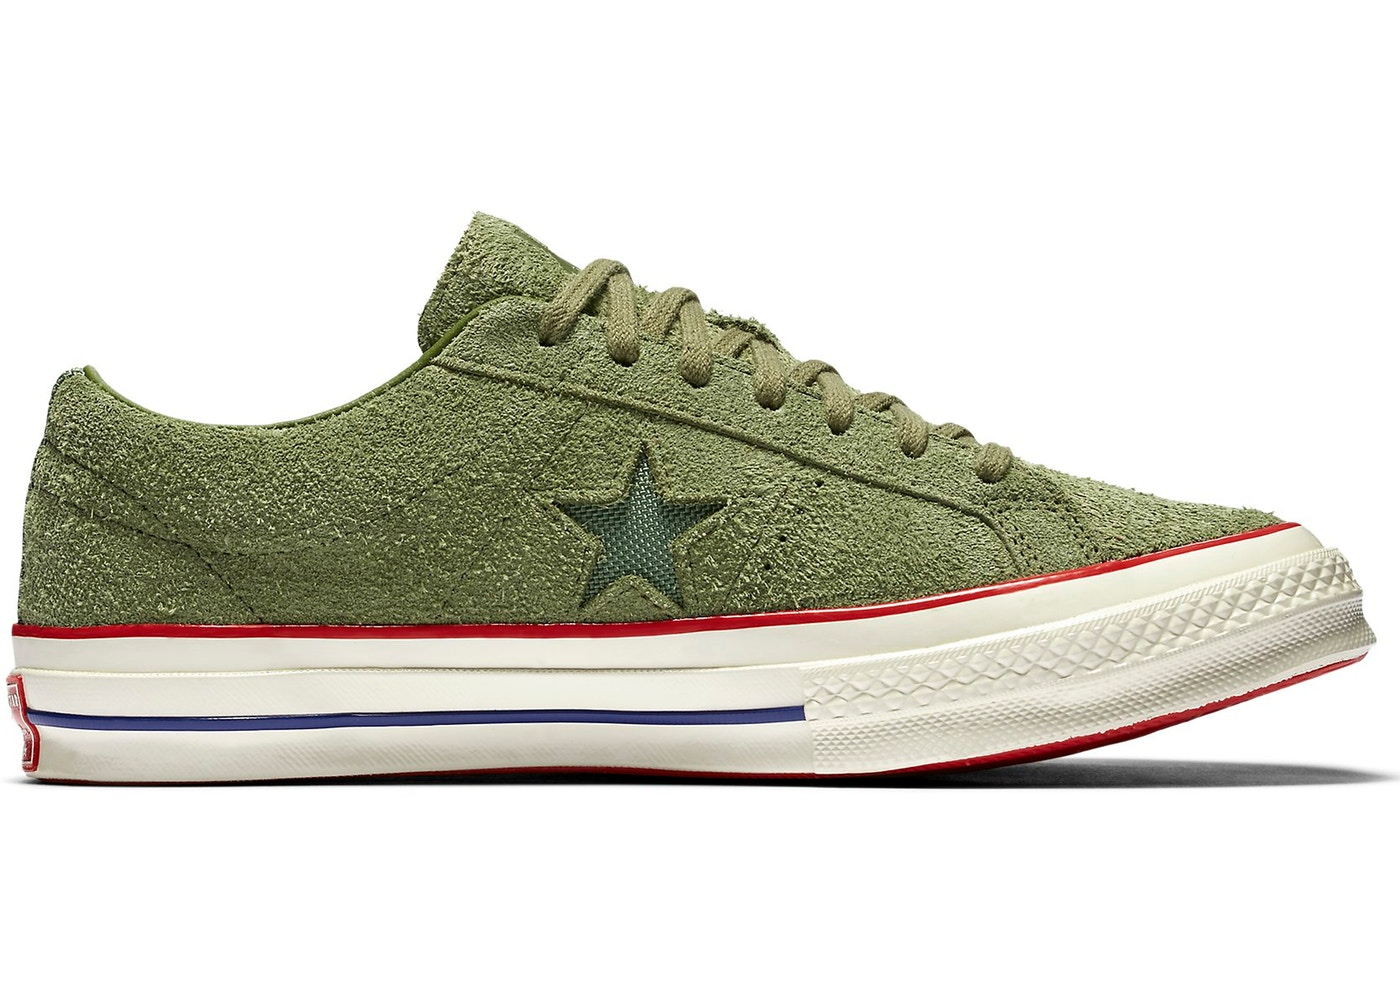 cdae70a53004 Converse One Star Ox Undefeated Olive - 158894C